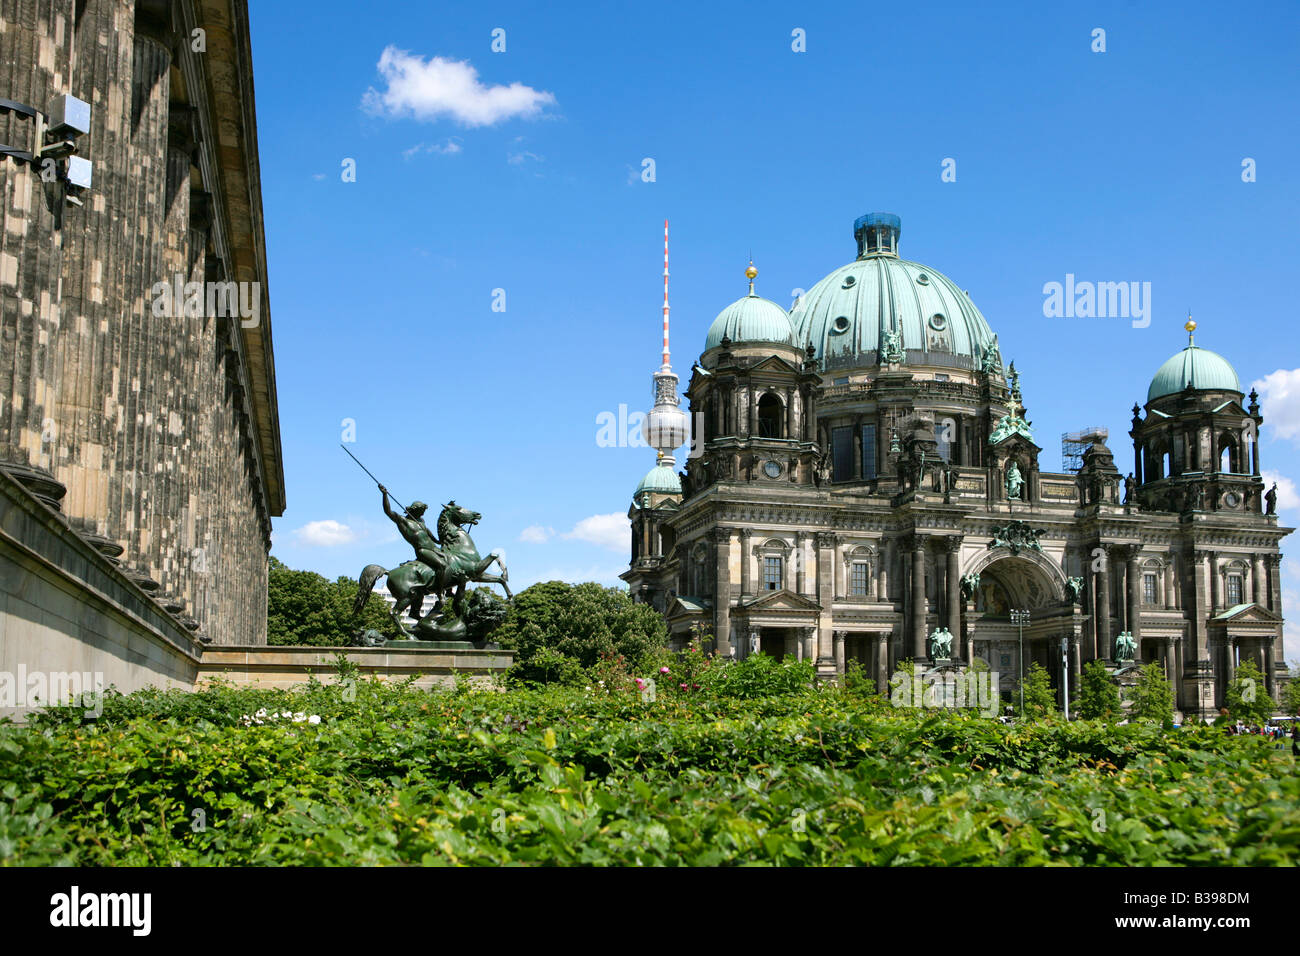 Deutschland, Berlin altes Museum und Dom, Germany the old Museum and Cathedral - Stock Image